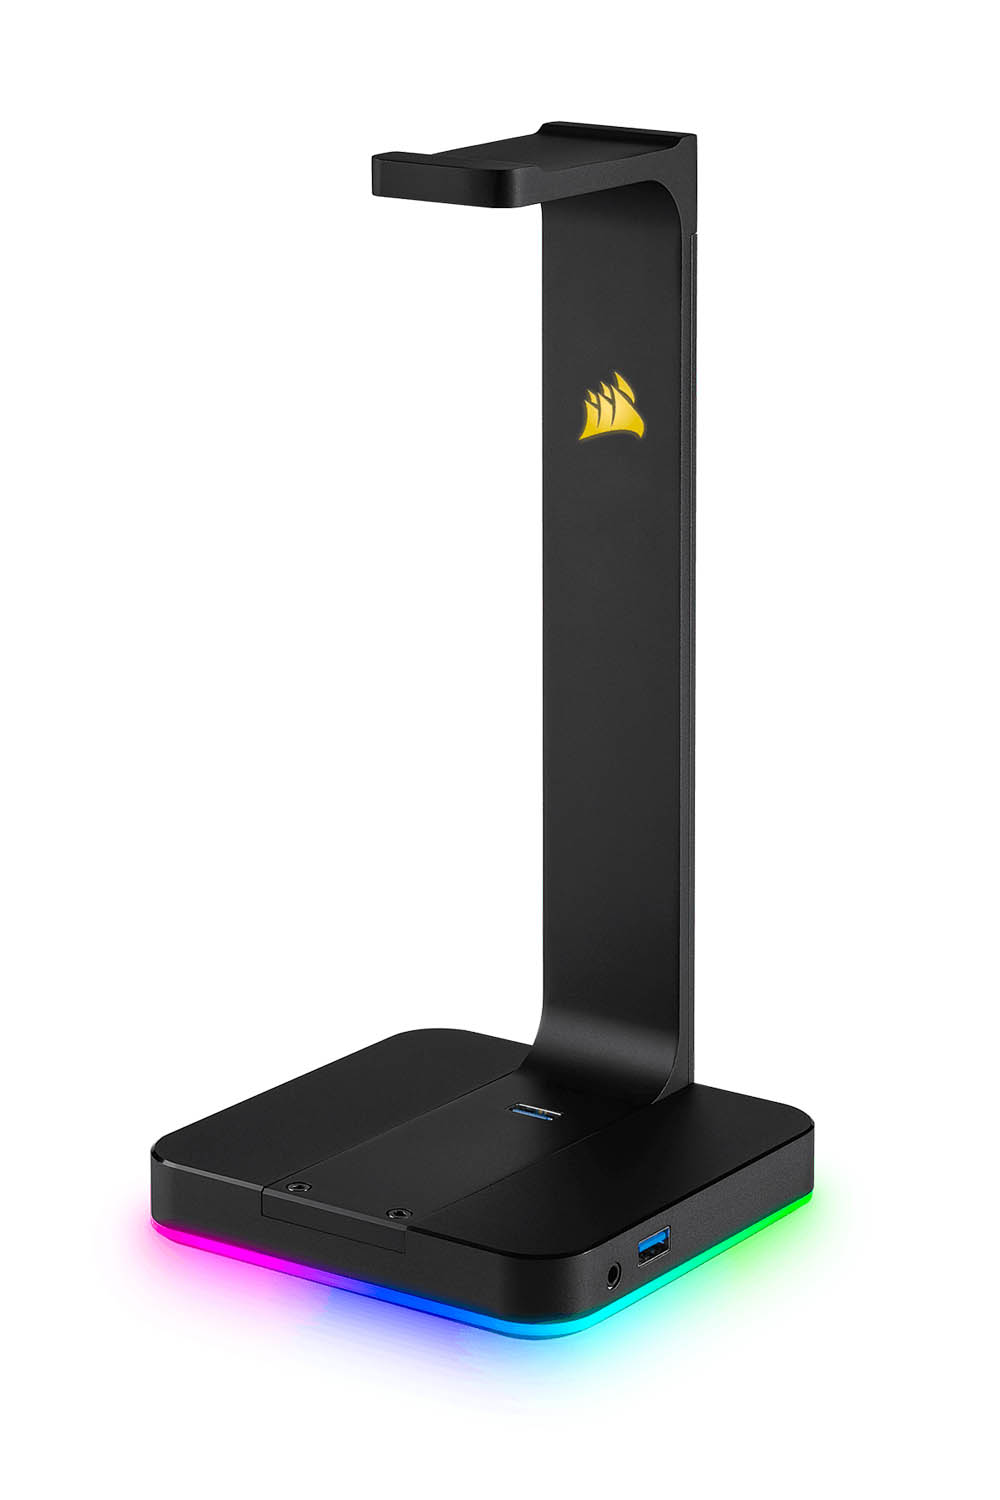 Corsair St100 Rgb Premium Gaming Headset Stand Review